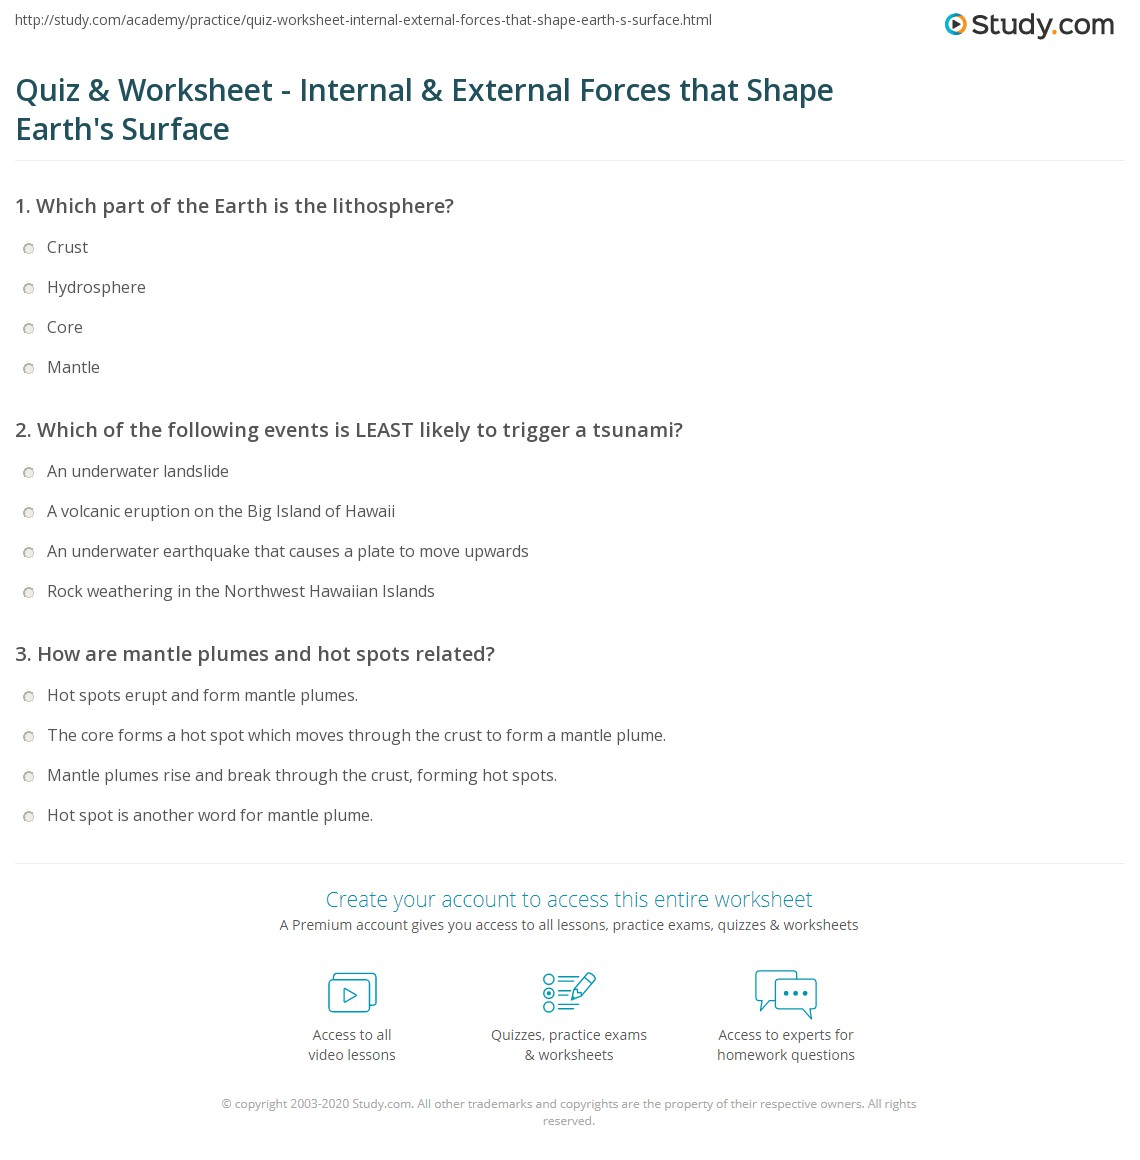 Worksheets Inside Planet Earth Video Questions Key quiz worksheet internal external forces that shape earths print the dynamic earth surface worksheet